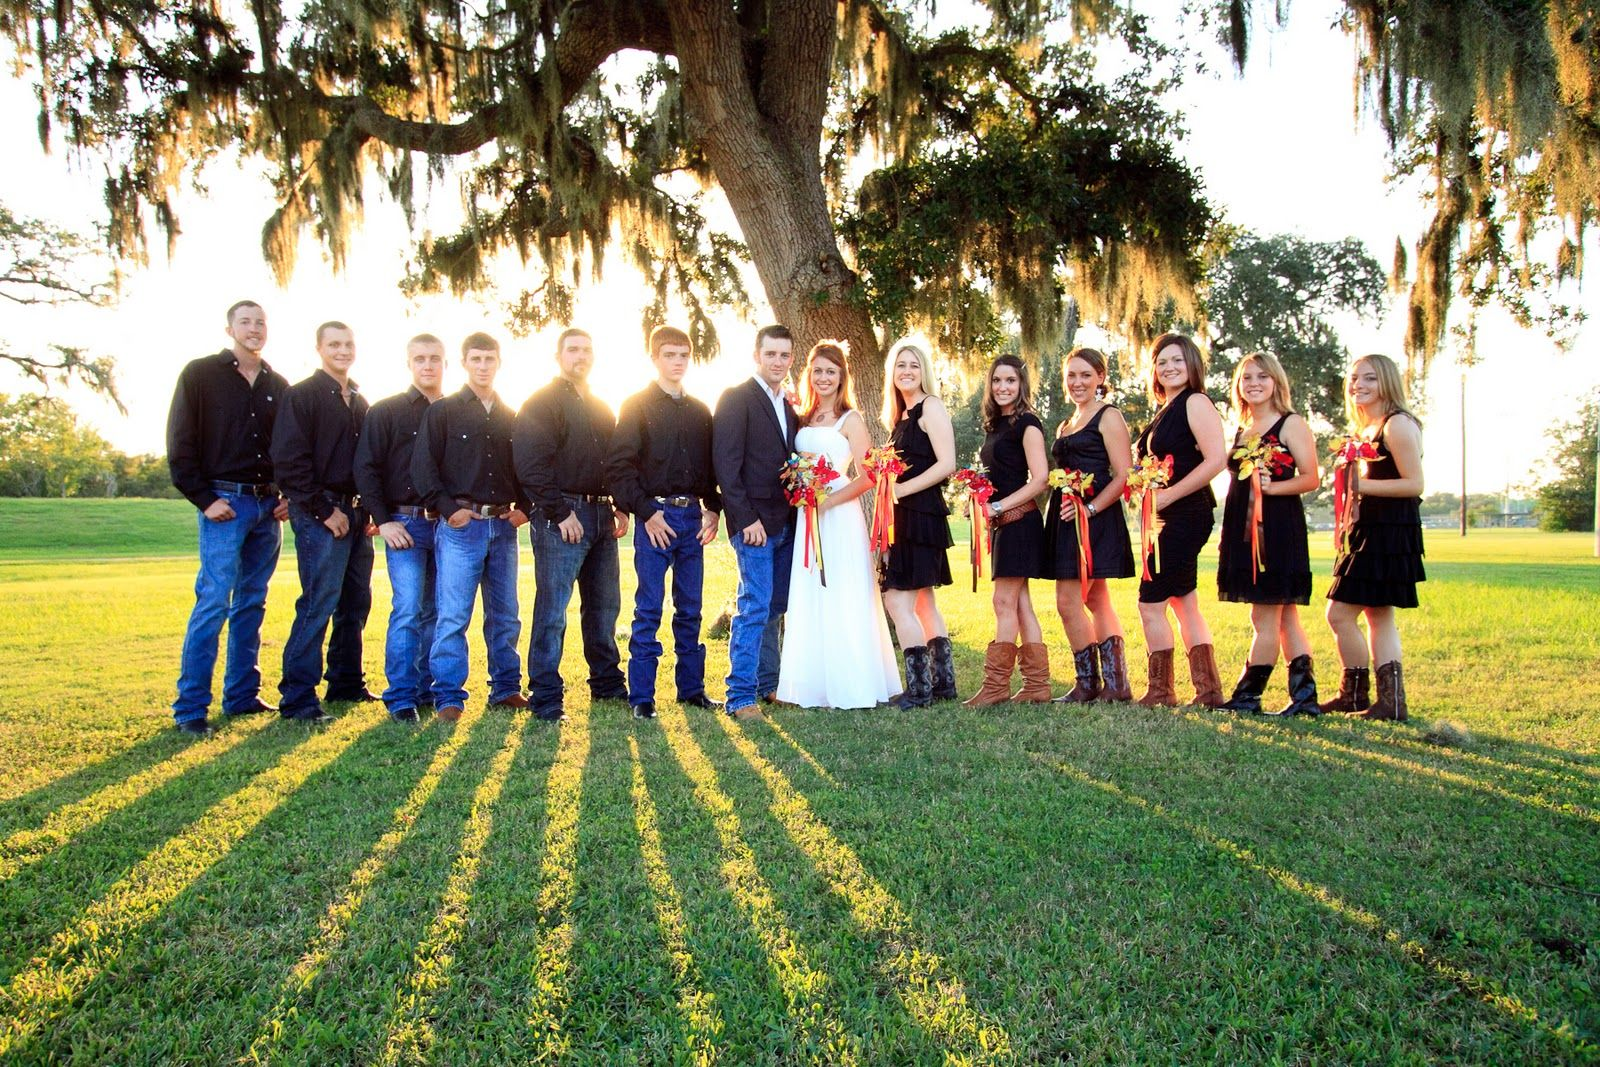 Best 25+ Blue Jean Wedding Ideas On Pinterest  Jeans. Fit And Flare Wedding Dresses With Ruching. Wedding Dresses In Blush. Wedding Dresses Lace And Backless. Long And Puffy Wedding Dresses